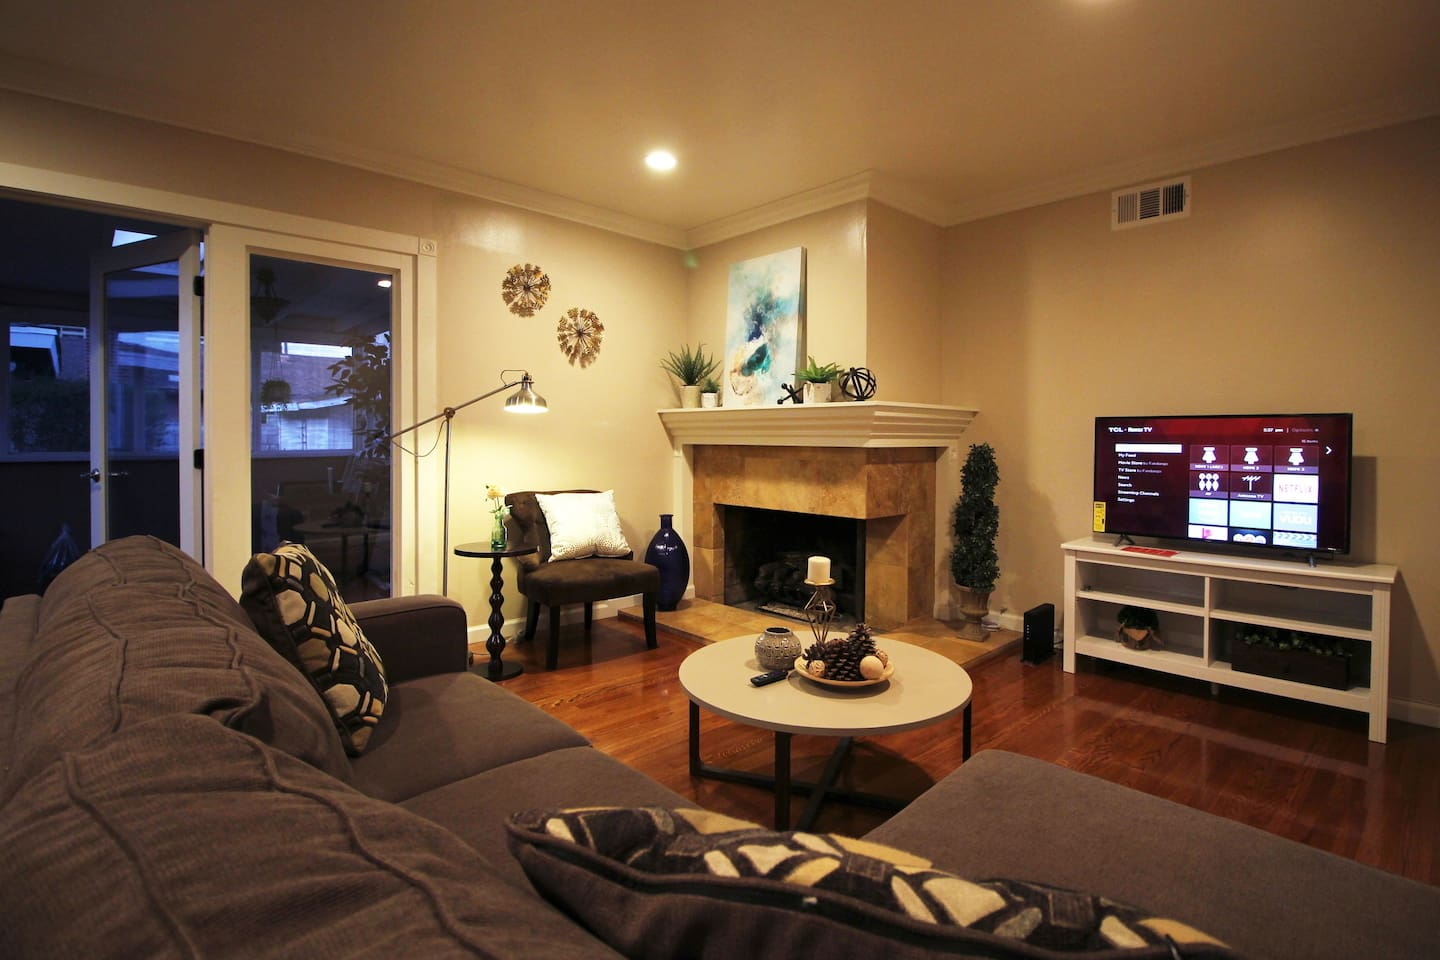 New, Cozy Home Near Disneyland & Many Attractions - Houses for Rent ...